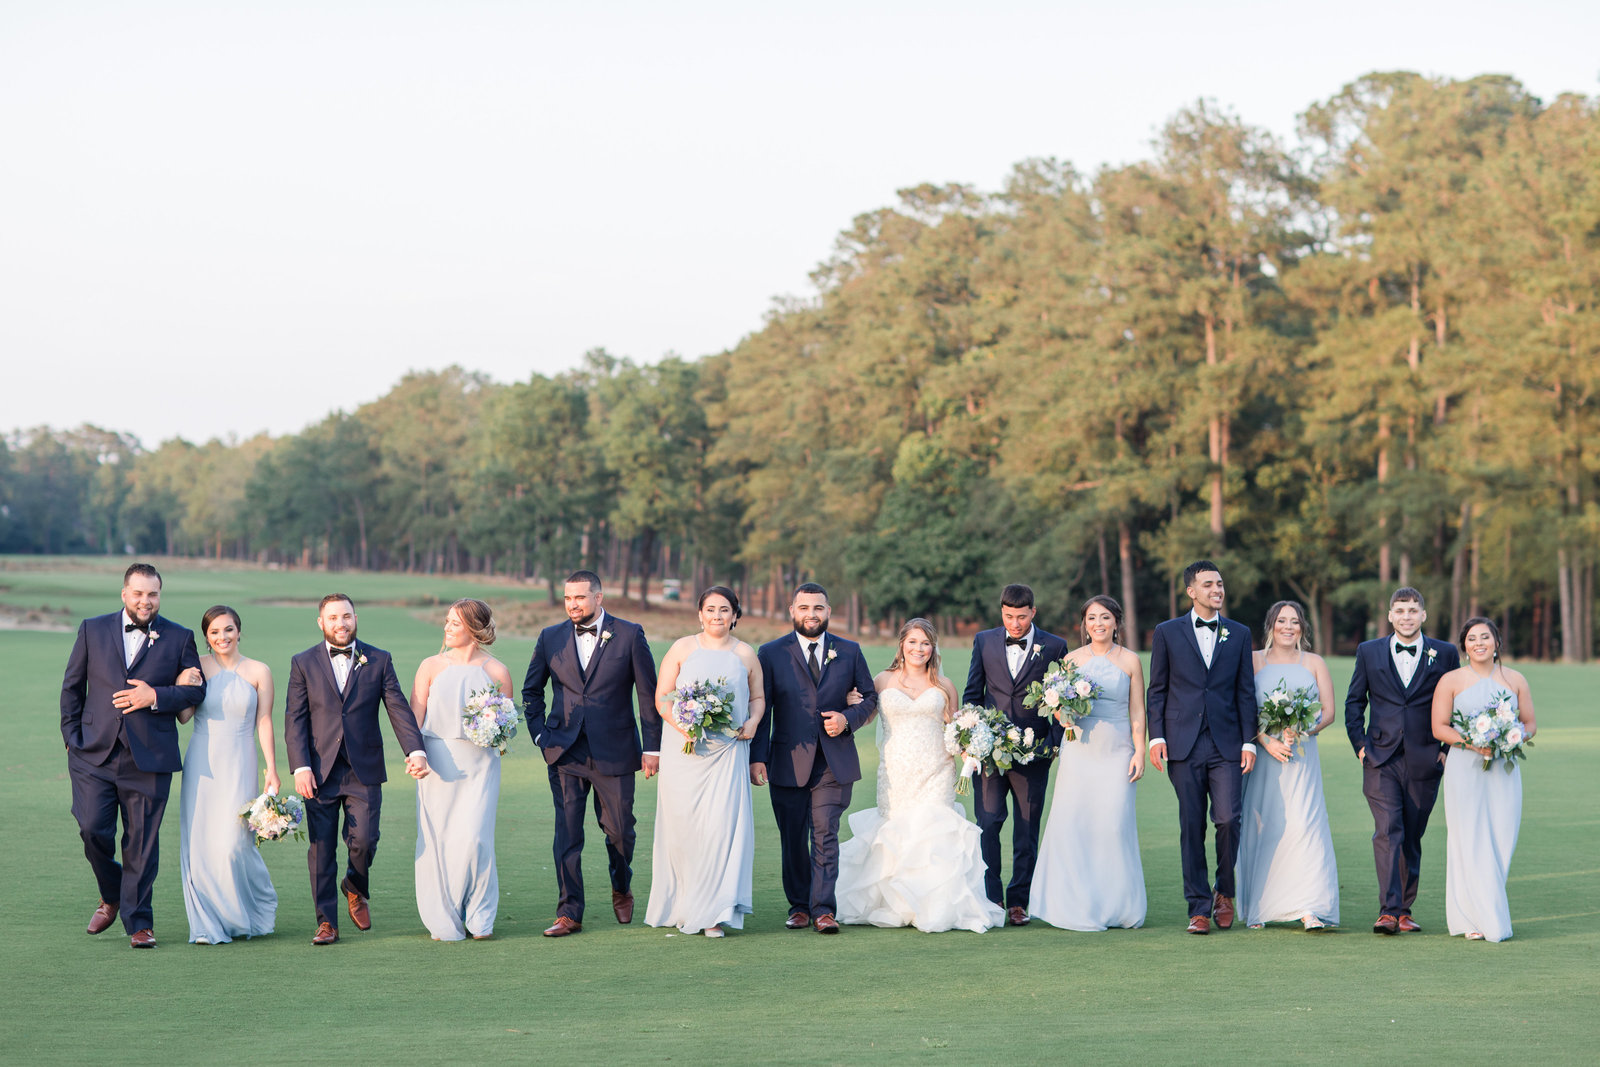 Jennifer_B_Photography-Pinehurst_Club-Pinehurst_NC-Wedding_Day-Caleb___Miranda-JB_Favs-2019-0201